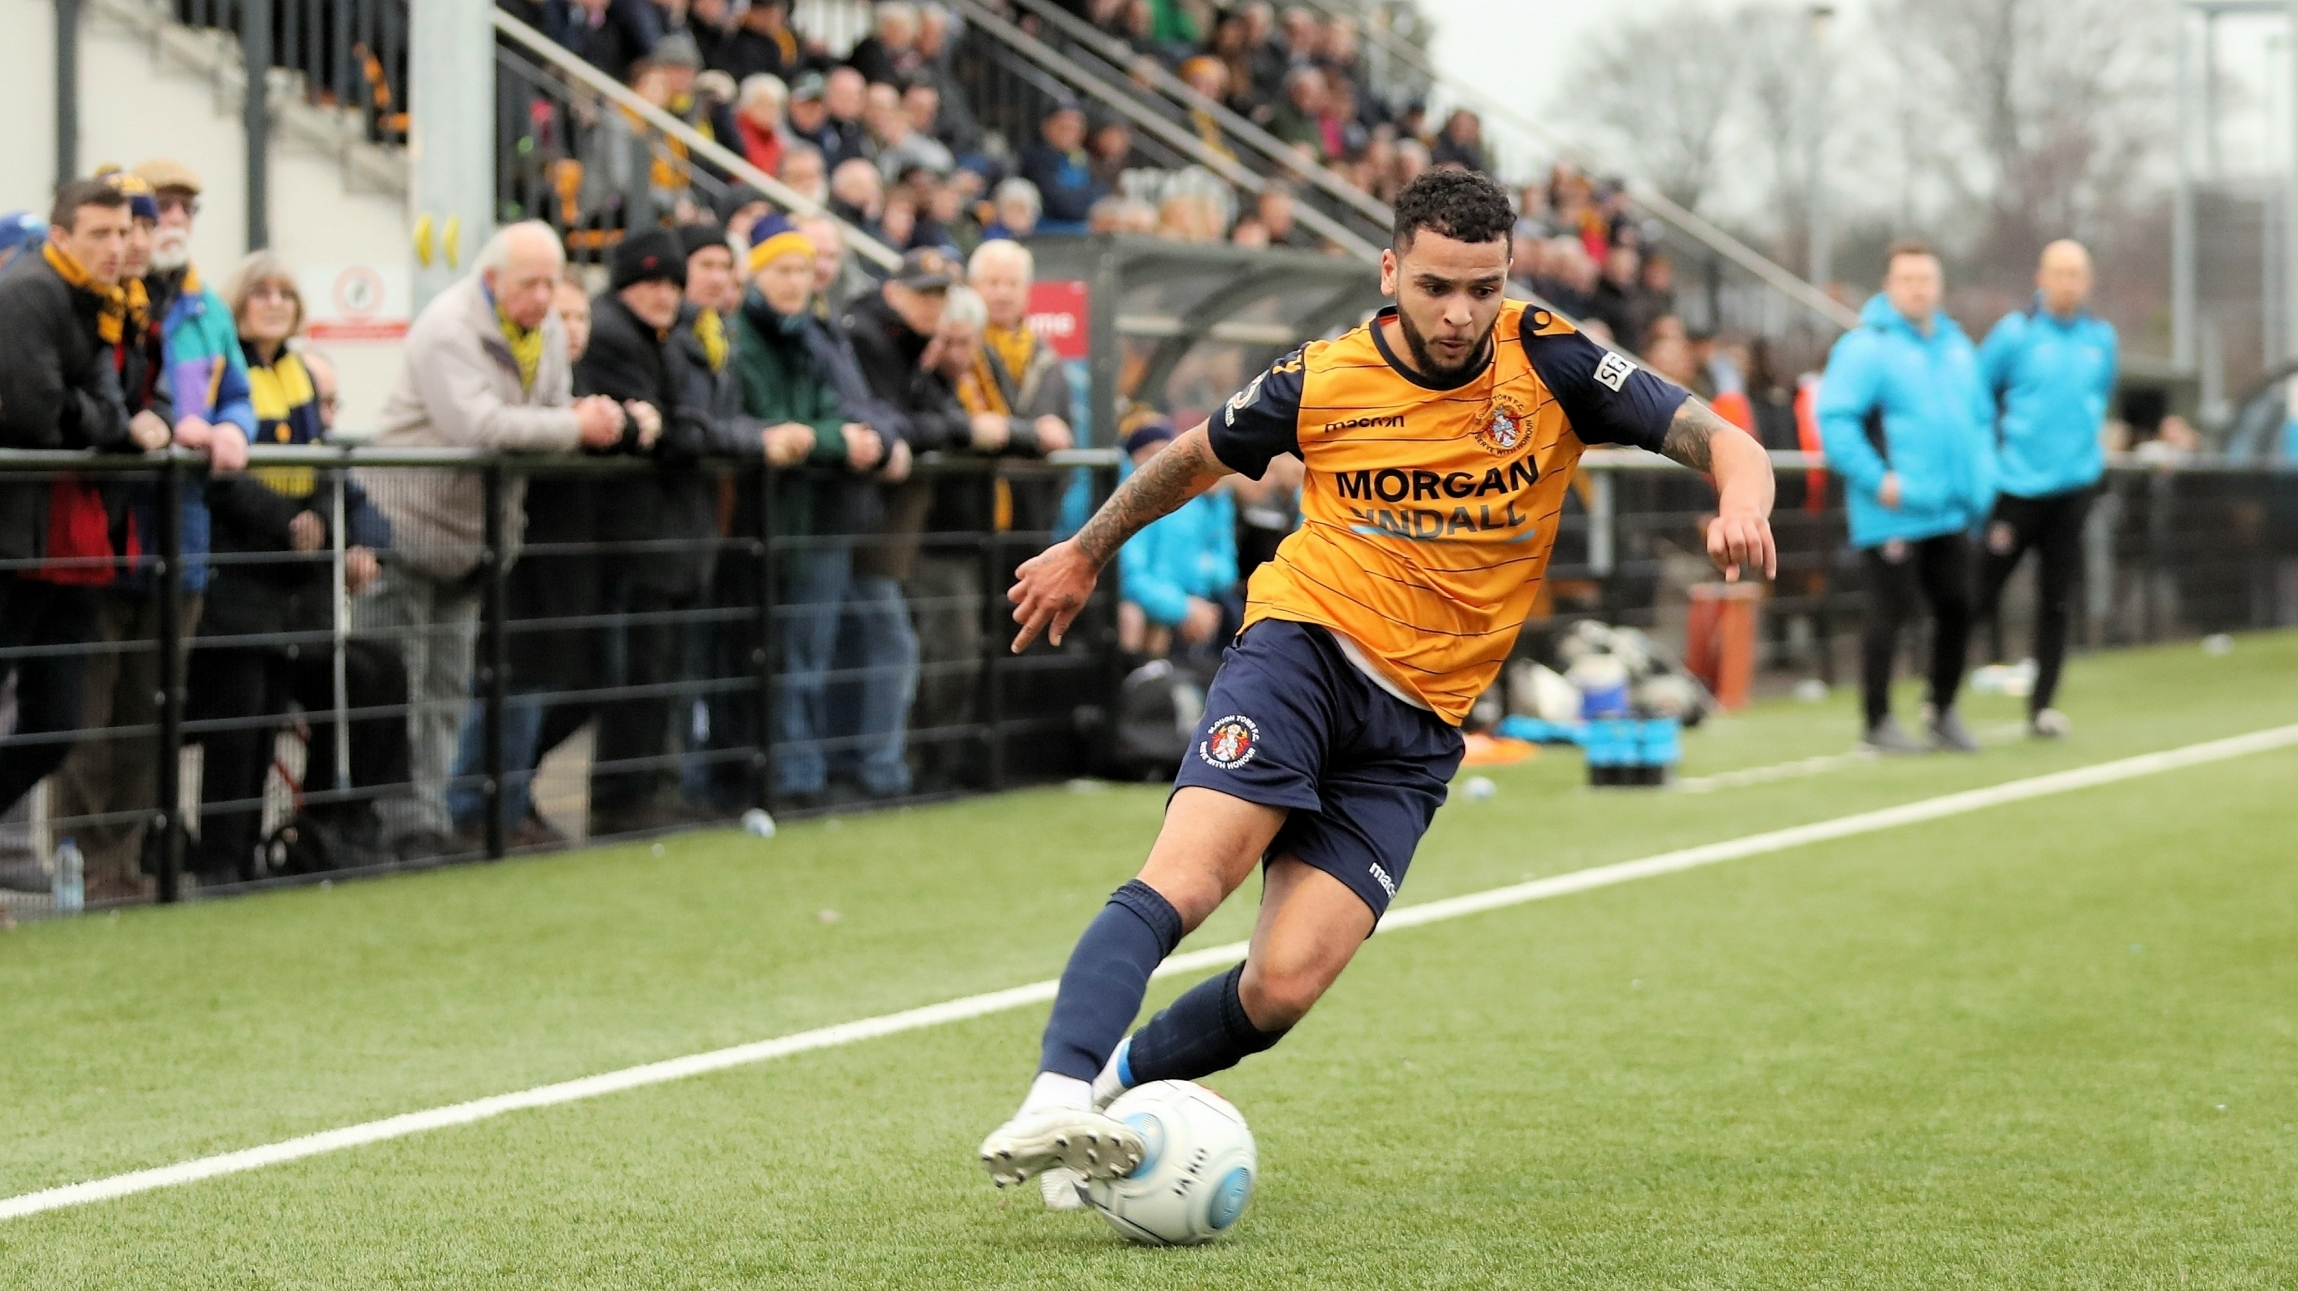 Billy Clifford scored his first goal for Slough Town in the 1-0 win against Welling United at Arbour Park in the National League South on Saturday.